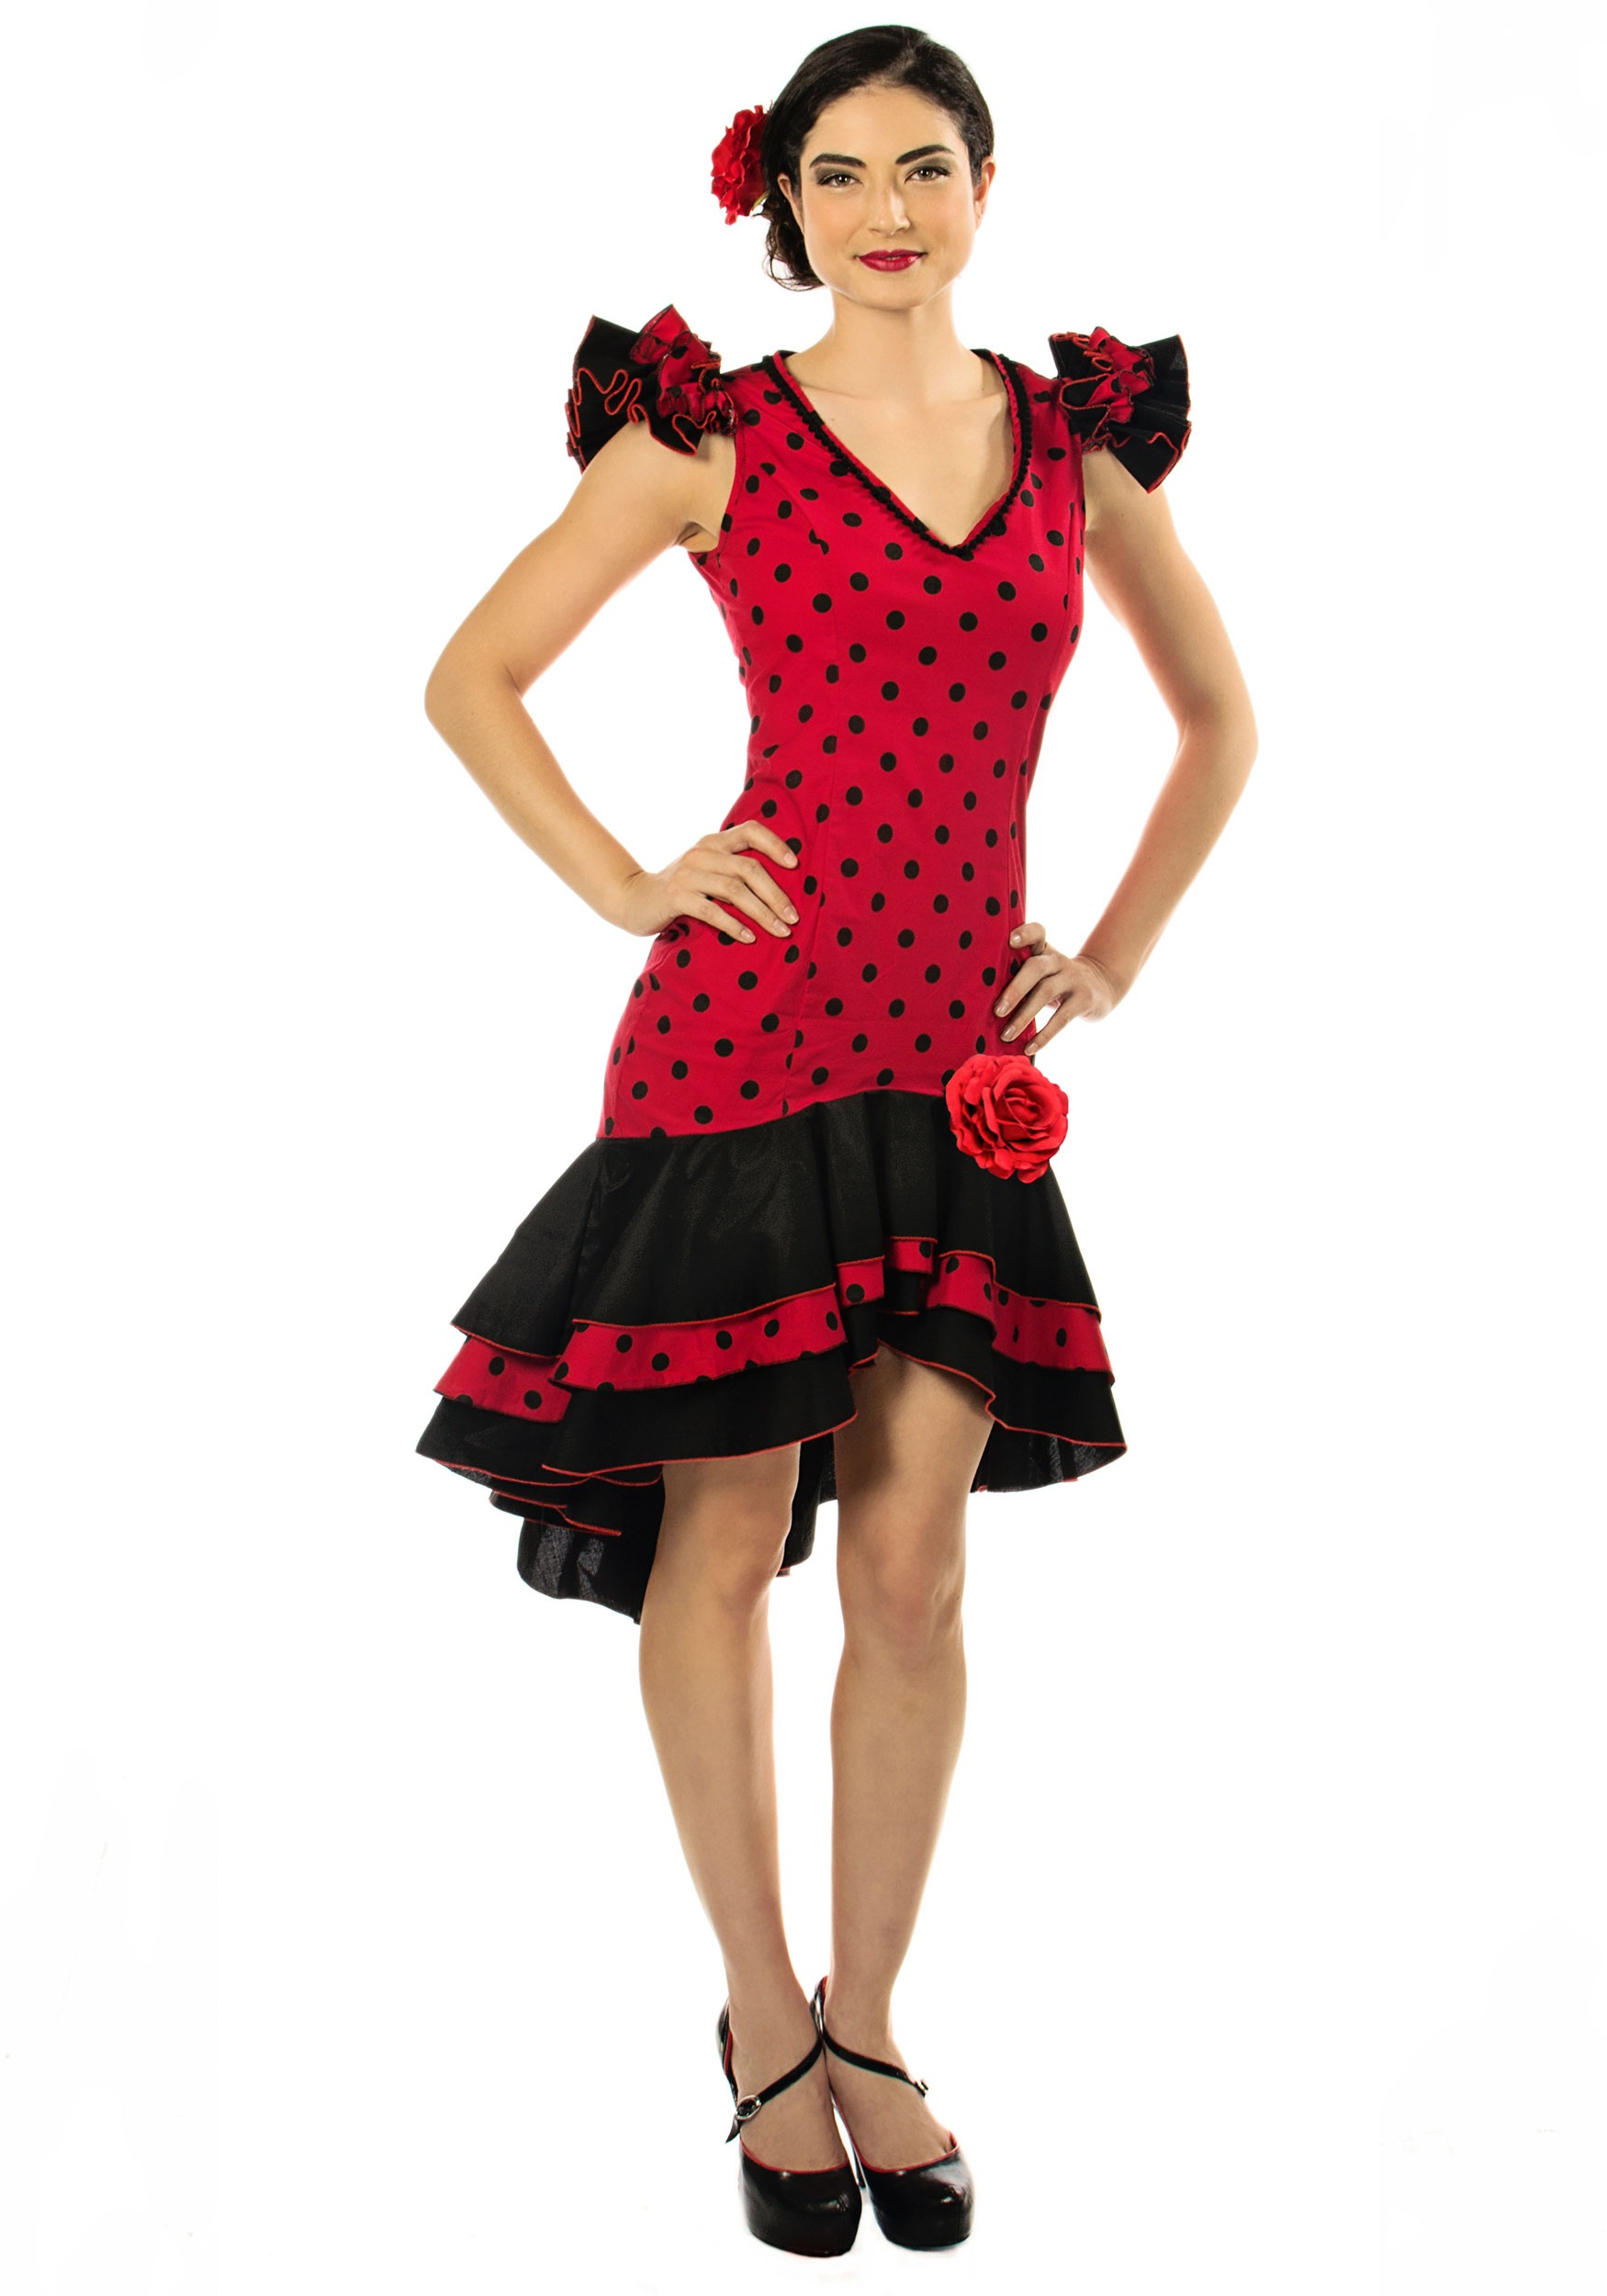 Cinco de mayo costumes fiesta outfits halloweencostumes womens plus size spanish dancer costume solutioingenieria Images